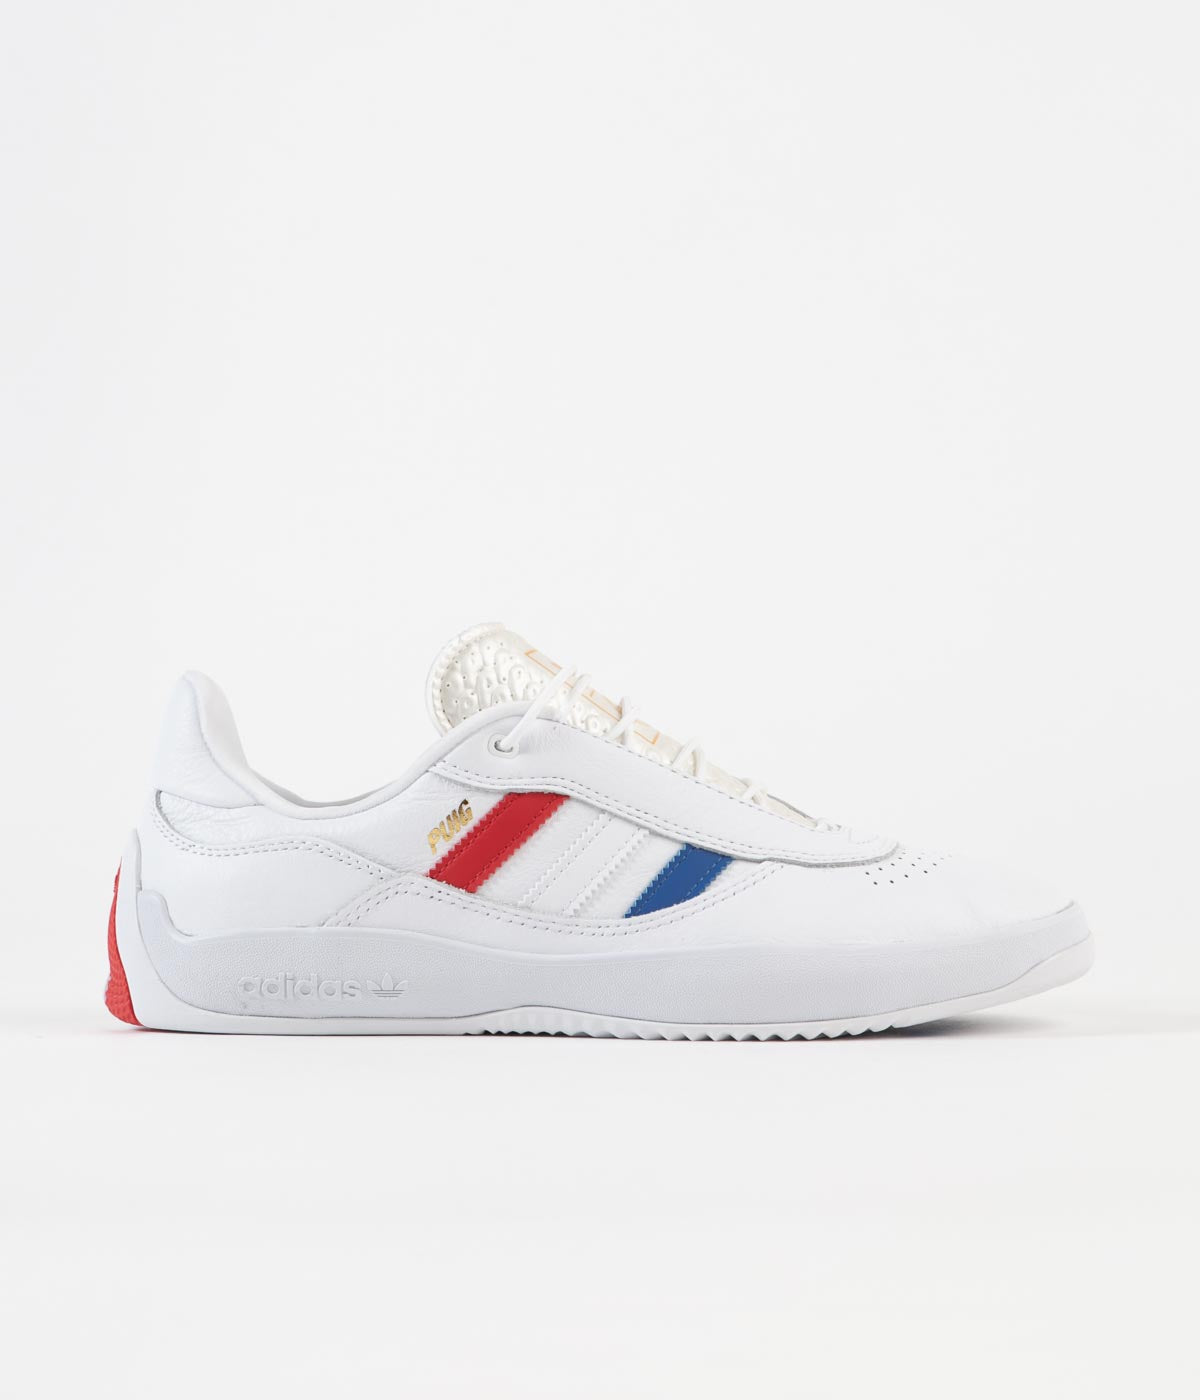 Adidas Puig Shoes - adidas nmd_r2 pk blue bell gold dress shoes